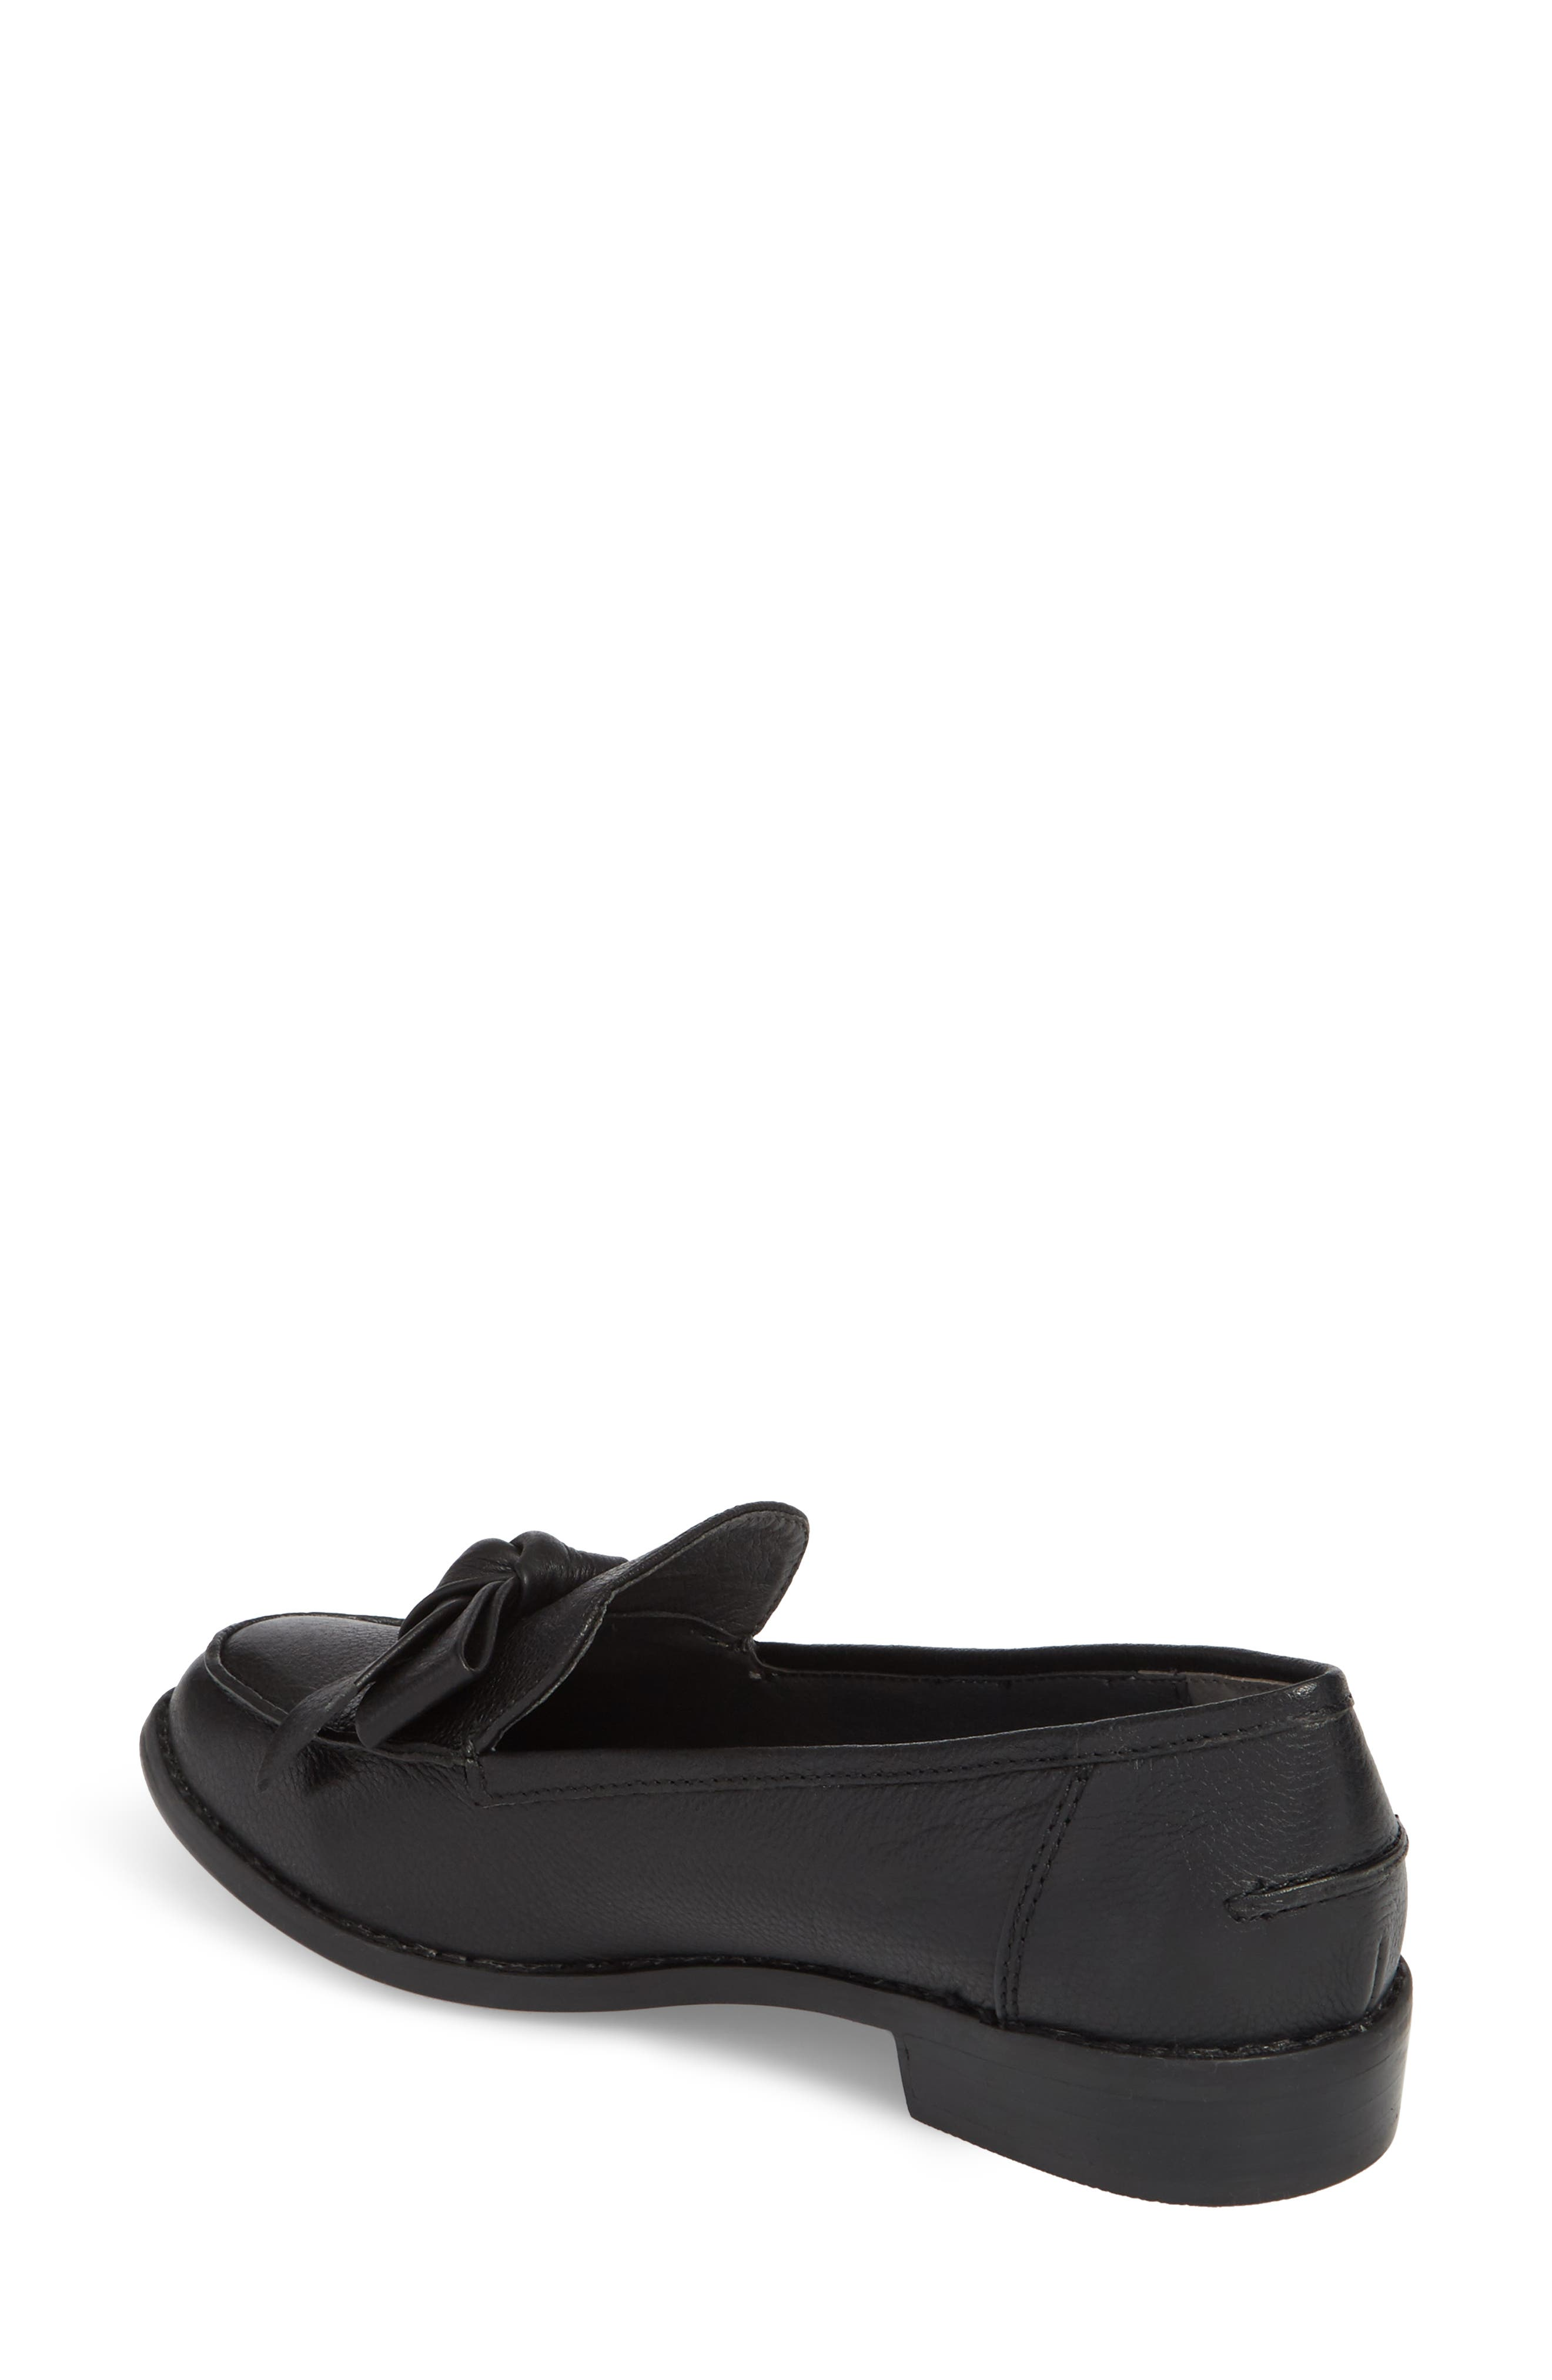 Beaux Loafer,                             Alternate thumbnail 2, color,                             001